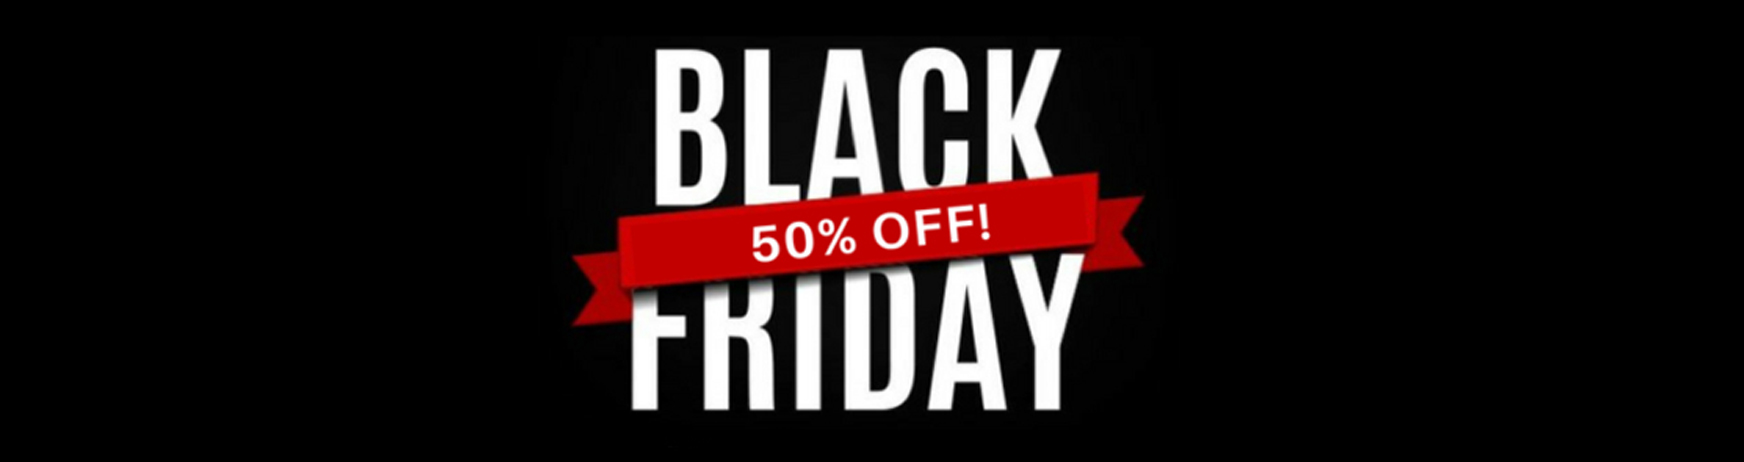 Black Friday -50% SALE